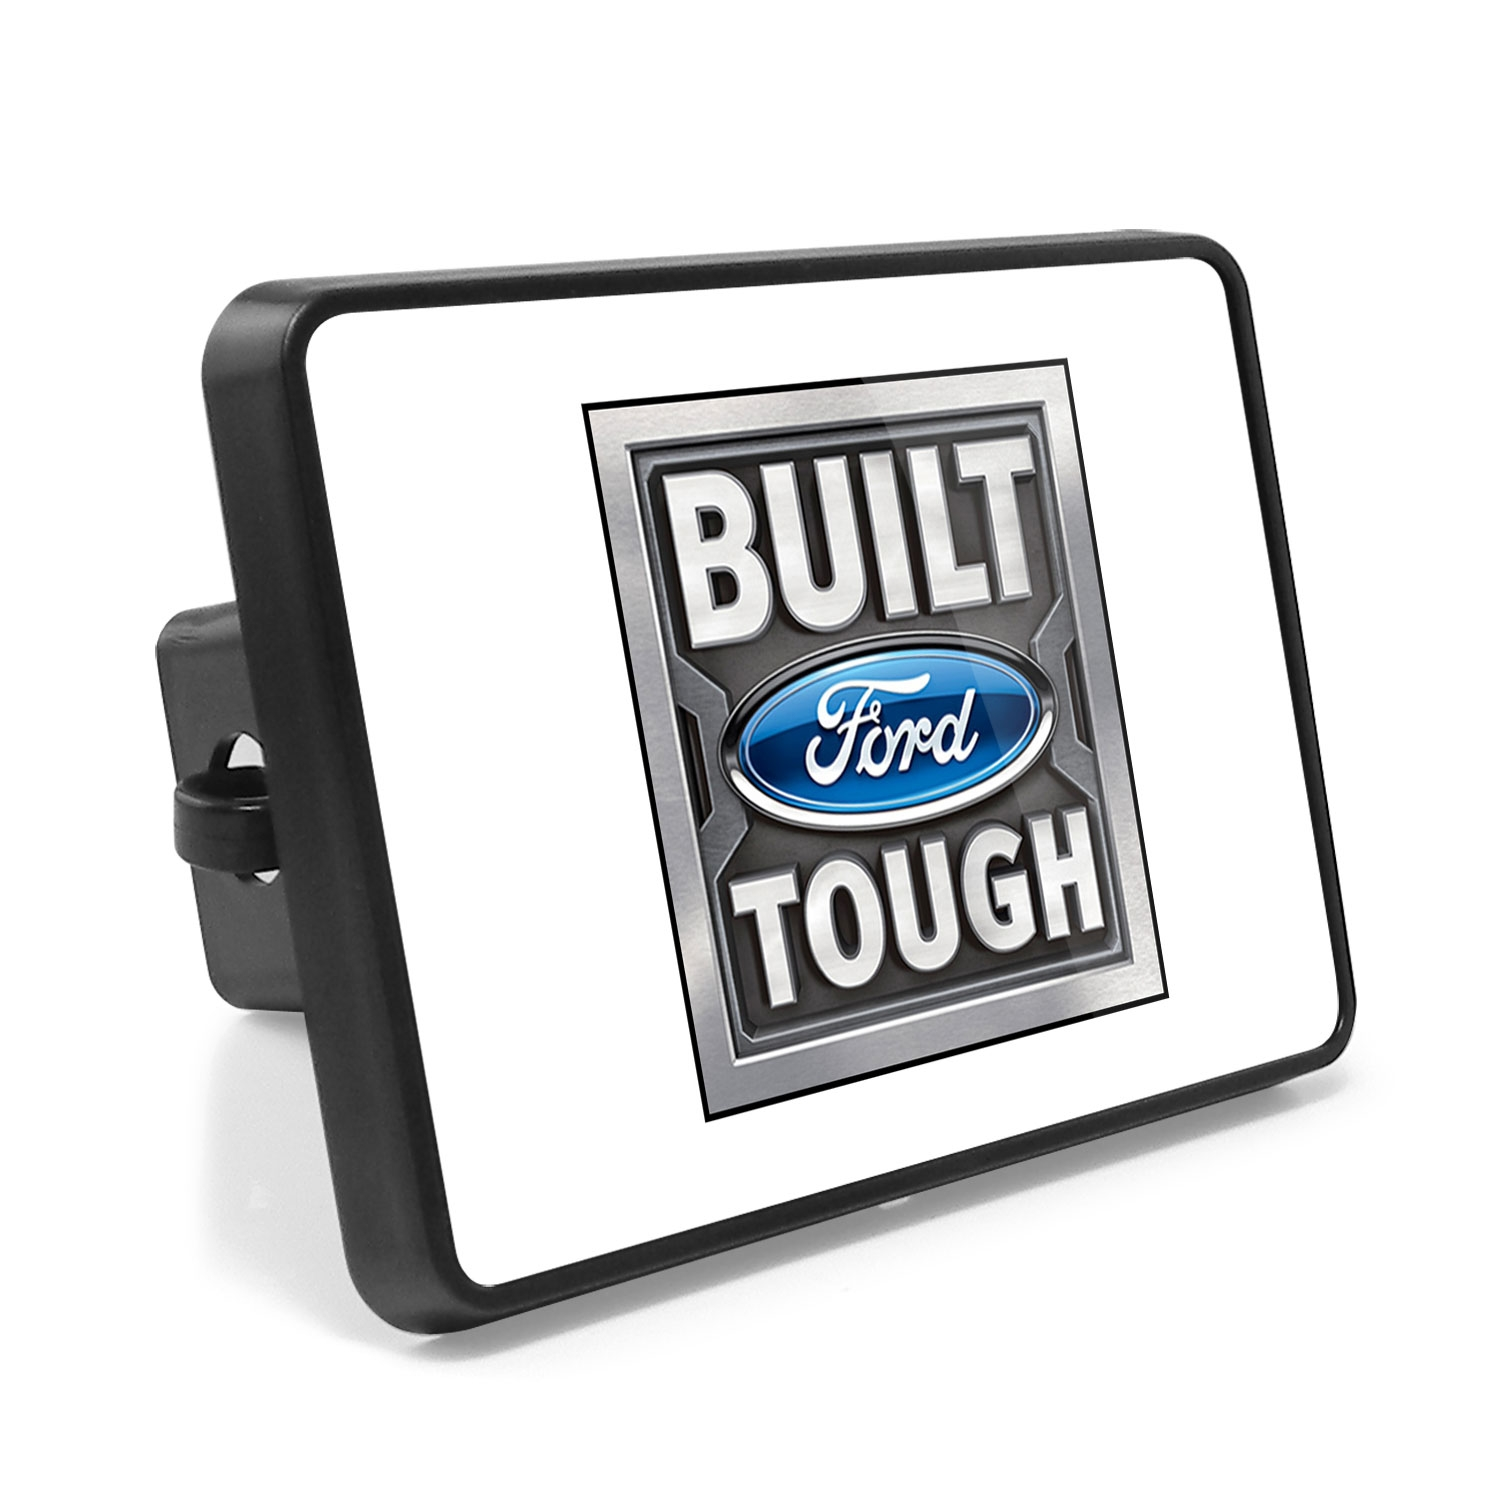 Ford Built Ford Tough UV Graphic White Metal Plate on ABS Plastic 2 inch Tow Hitch Cover